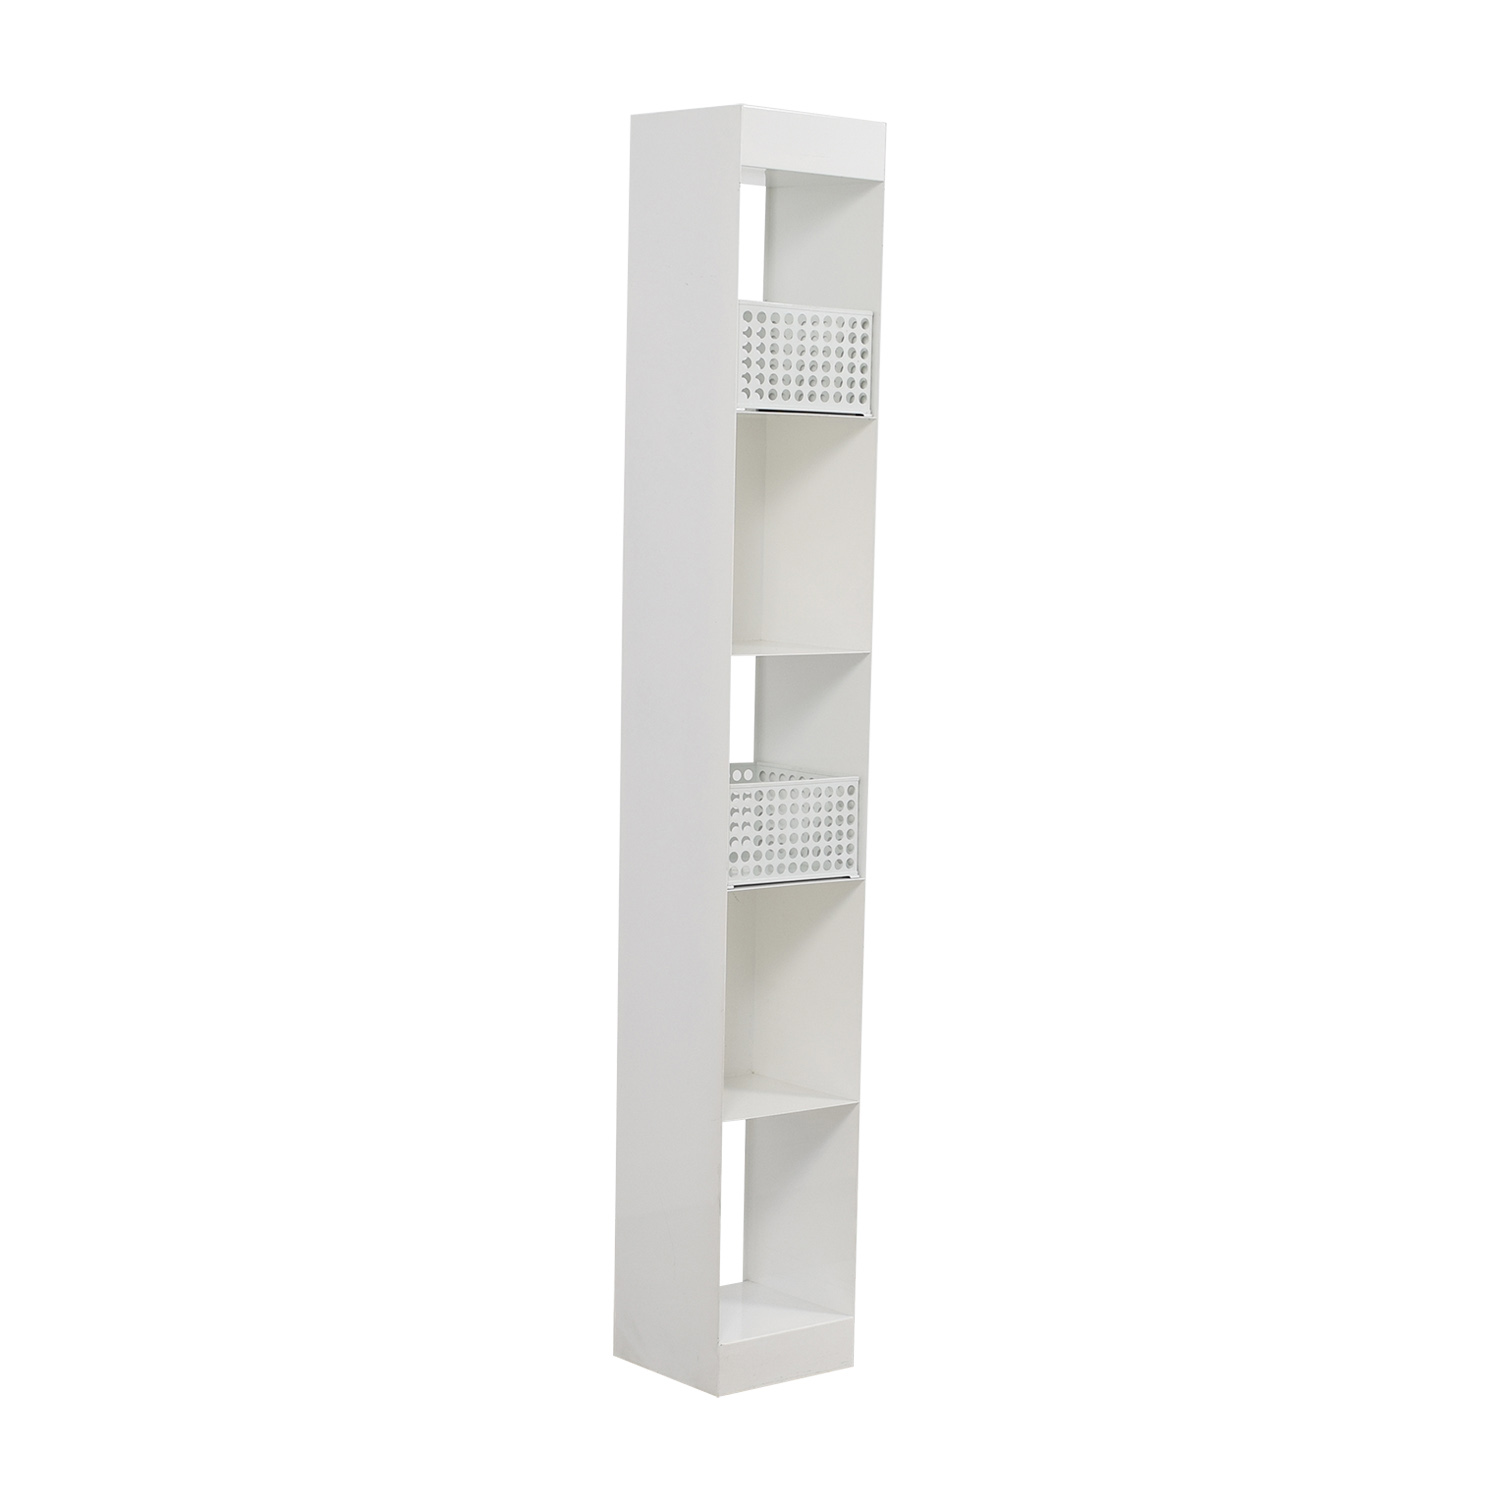 CB2 White Decorative Shelving / Storage